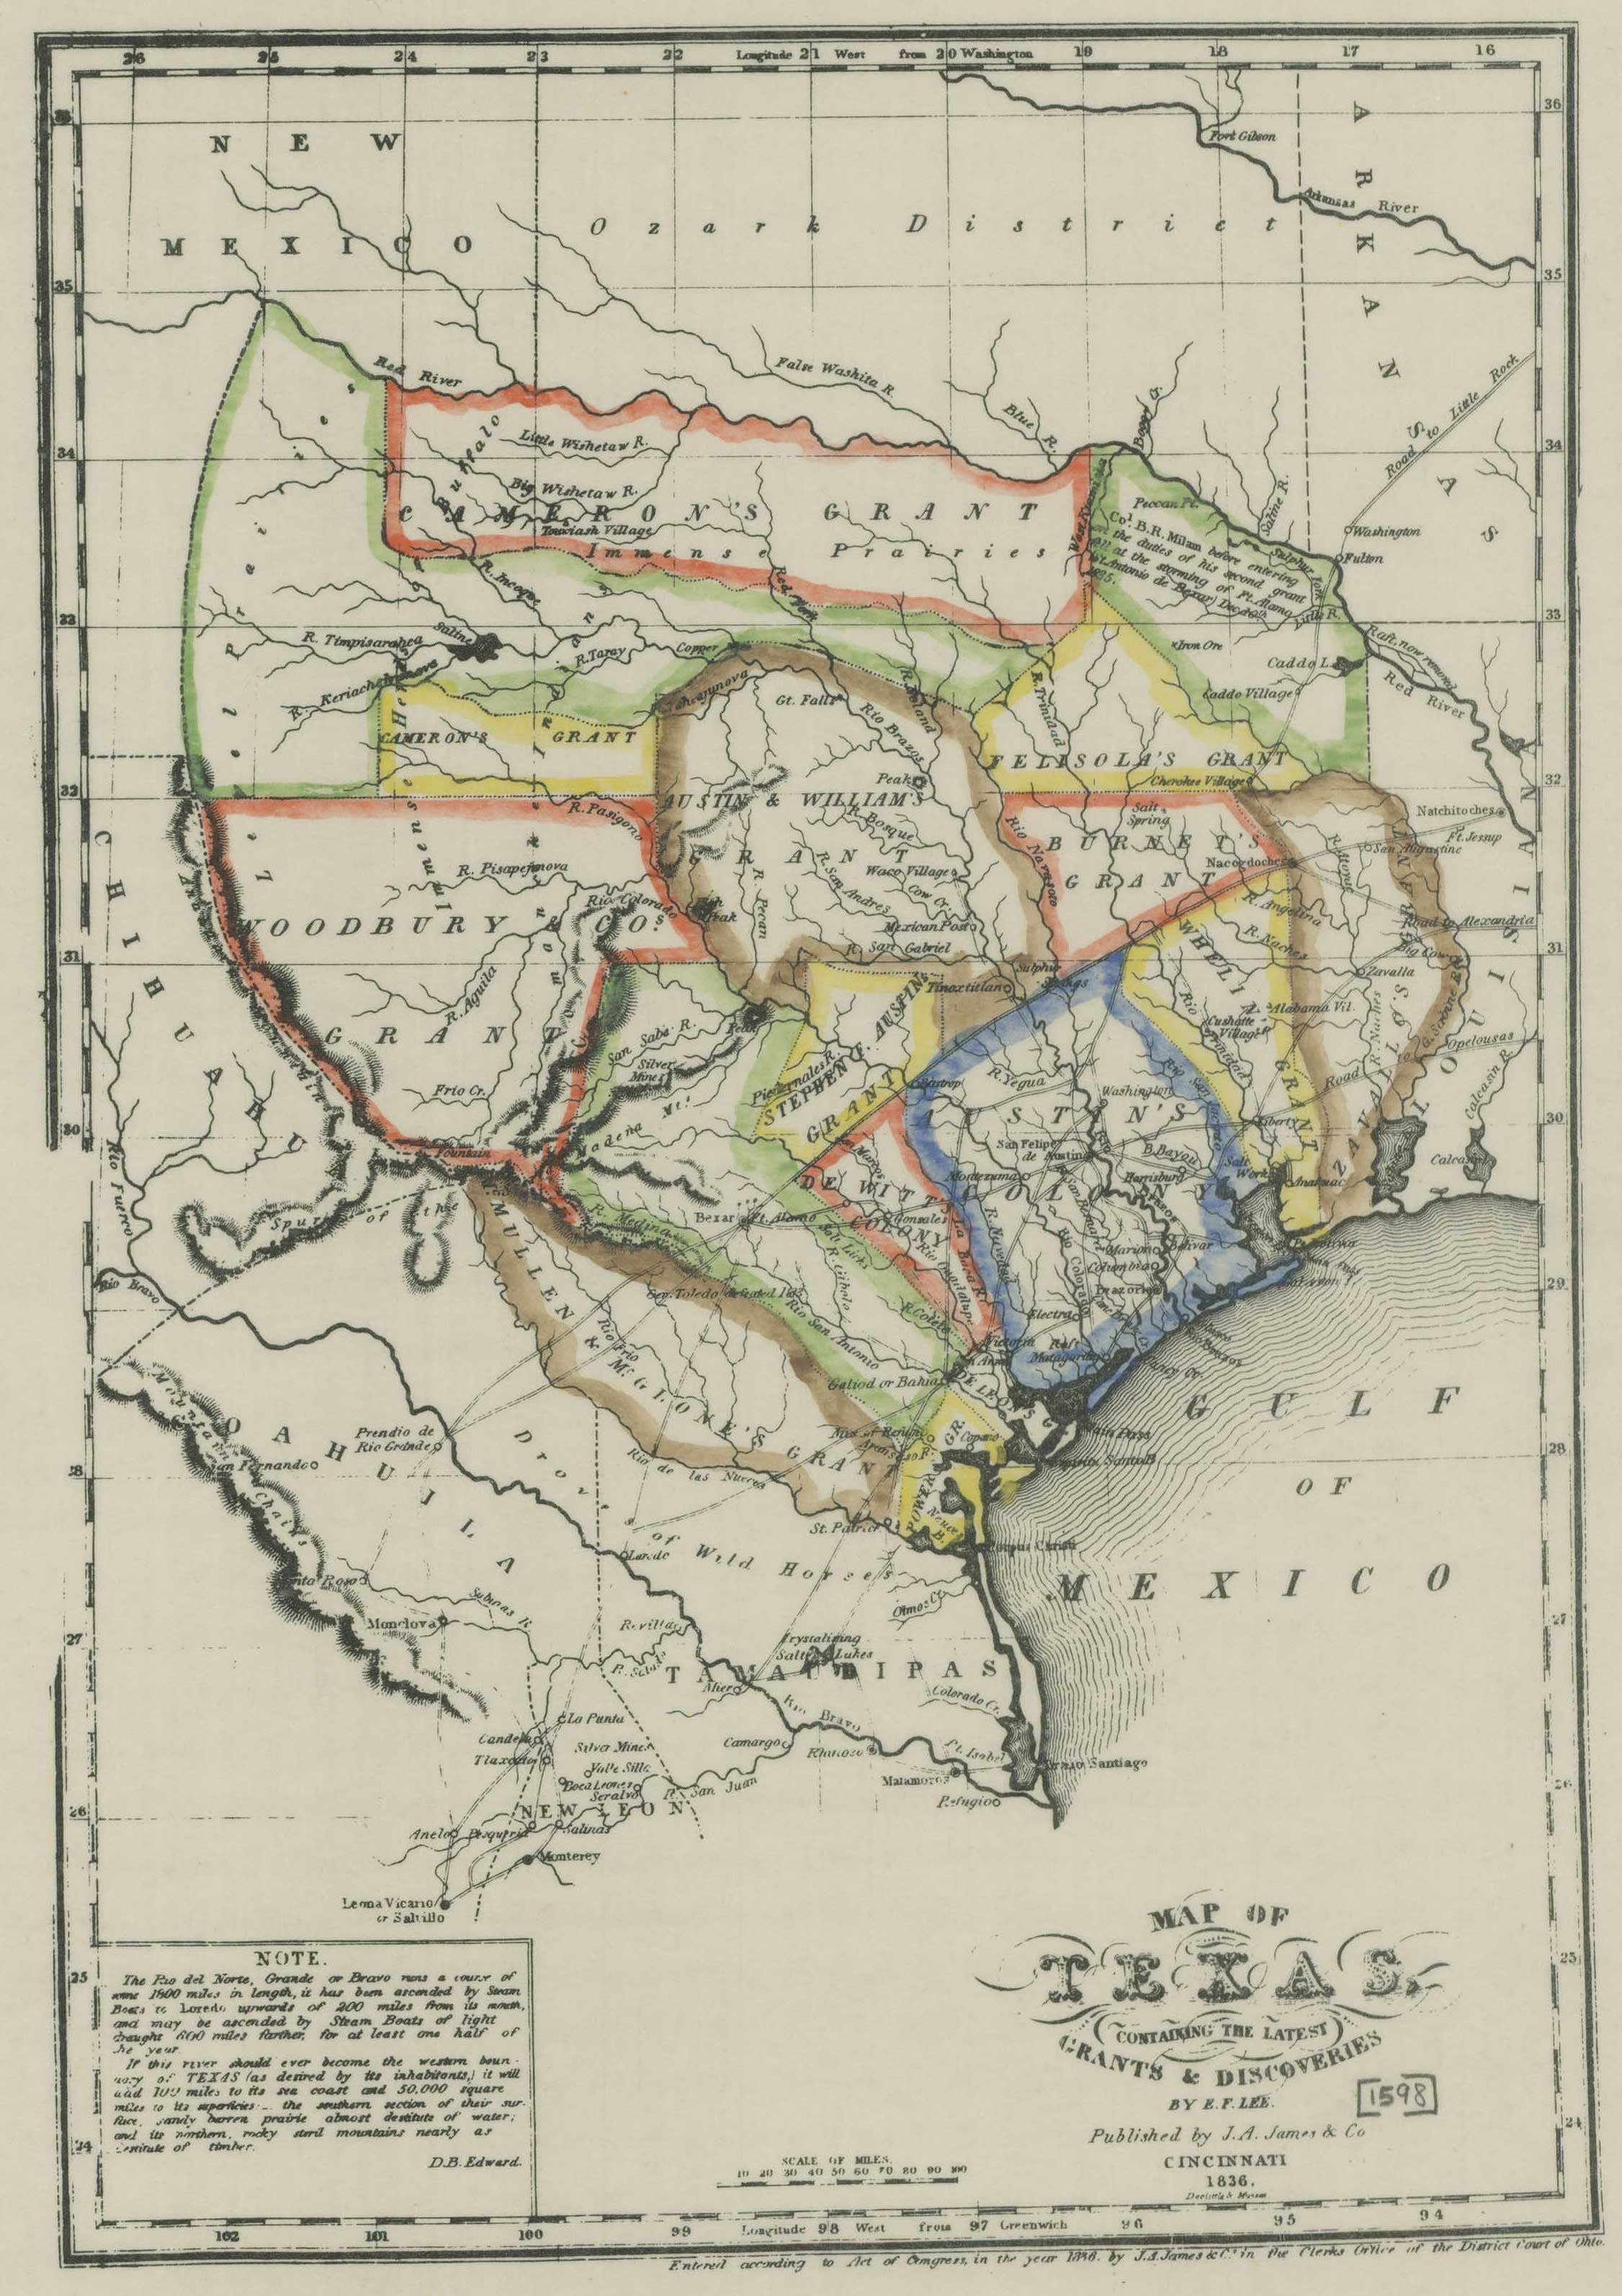 Reproduction Of An 1836 Map Of Texas | Products | Texas, Map - Texas Map 1836